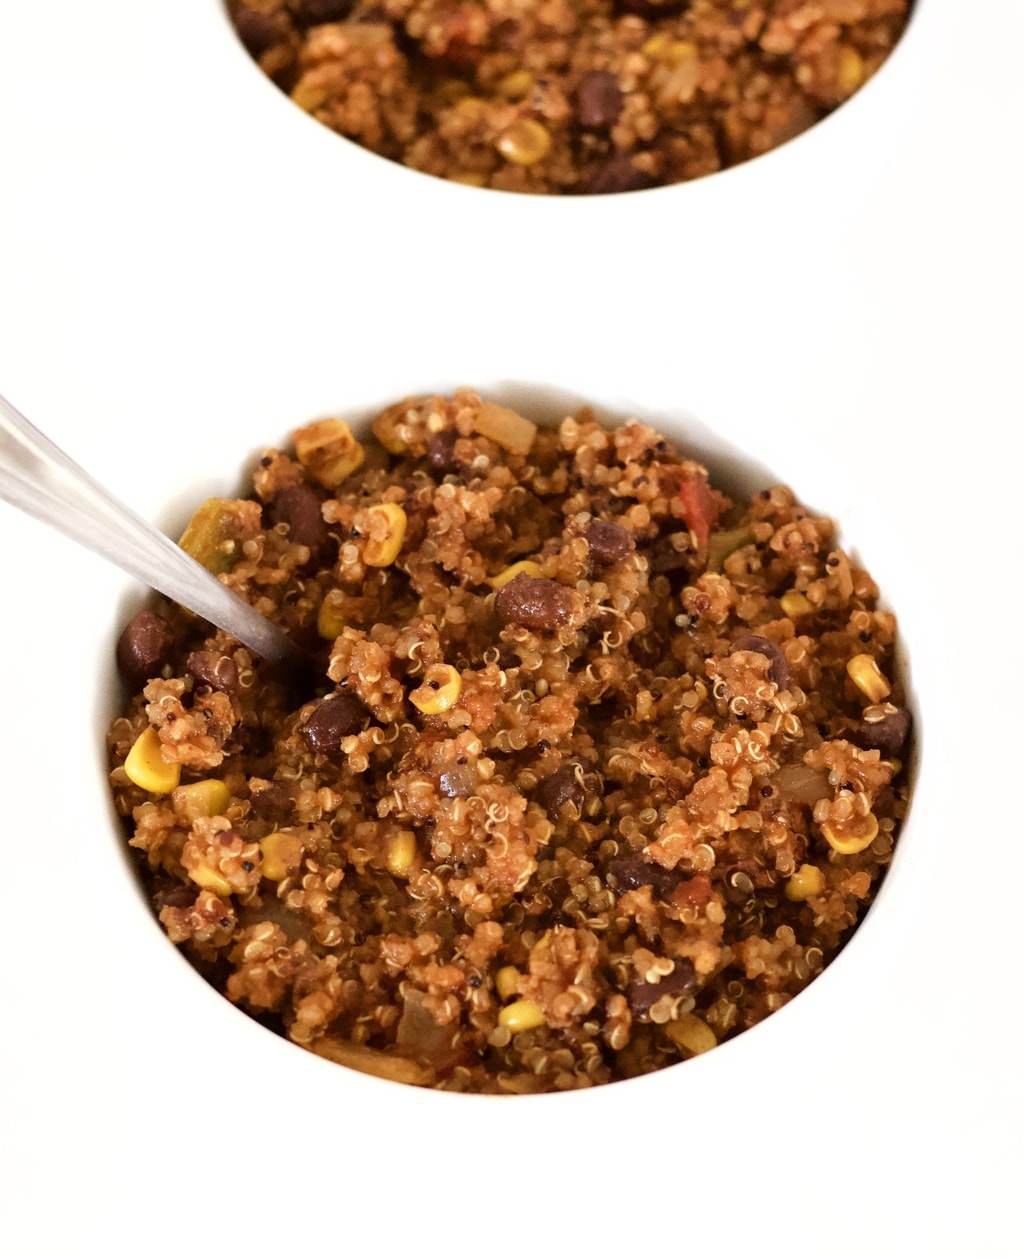 This One-Pot Quinoa Black Bean Chili is the perfect warm, cozy, and hearty meal for the holiday season! It is so easy to make - one pot and 30 minutes is all you need! This recipe is also ultra healthy and packed with nutrition - it's vegan, gluten-free, oil-free, and absolutely delicious.